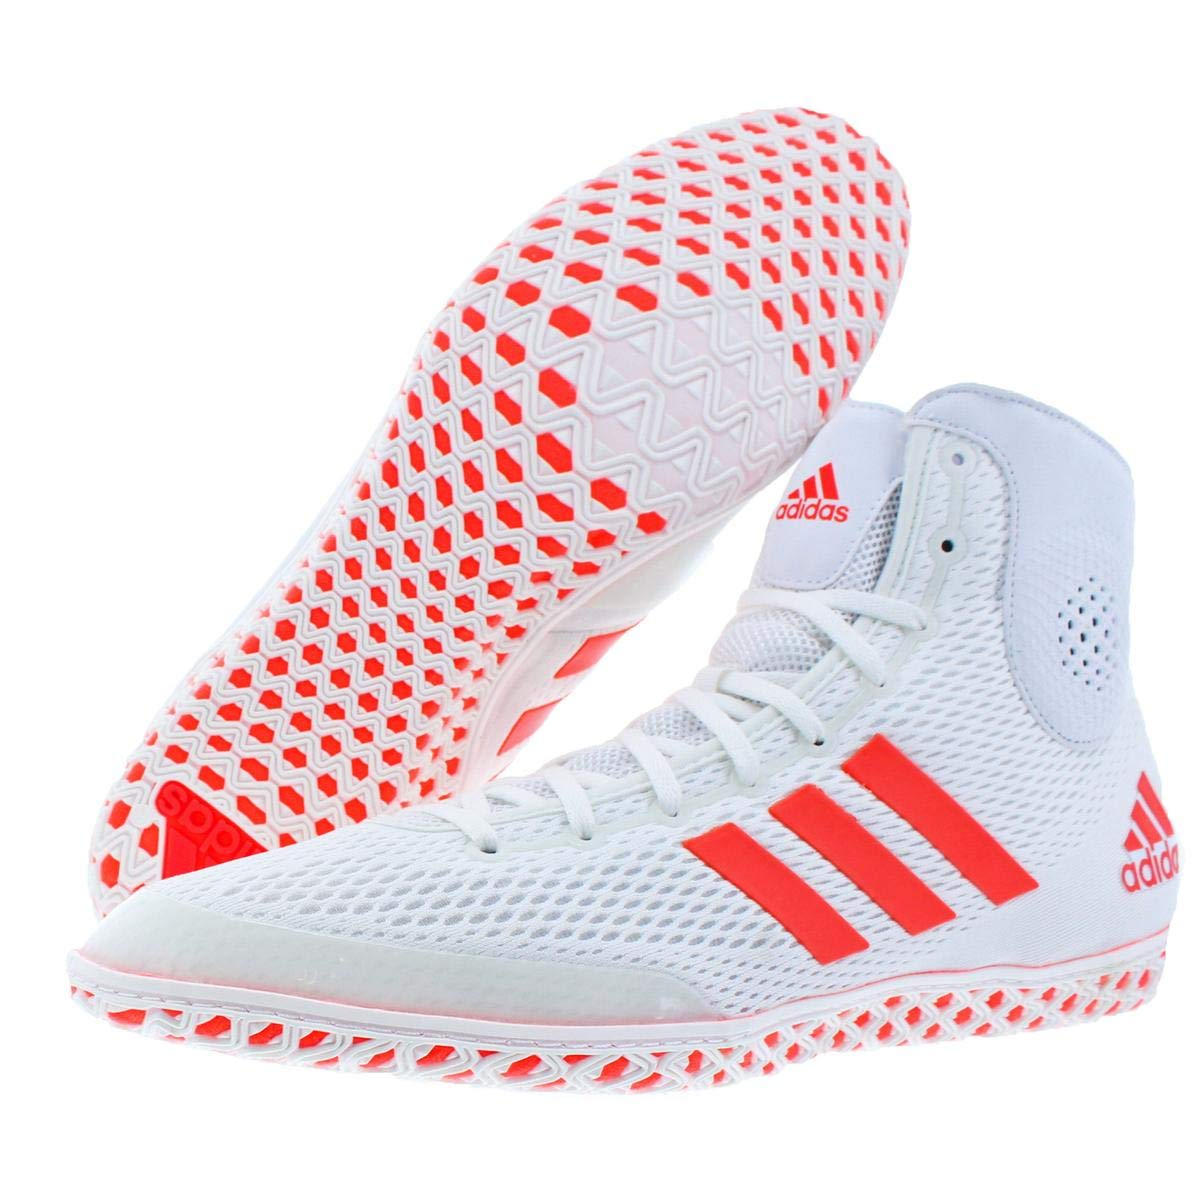 ... low cost amazon adidas mens tech fall.16 lightweight wrestling shoes  white 15 medium d 67e302bc6